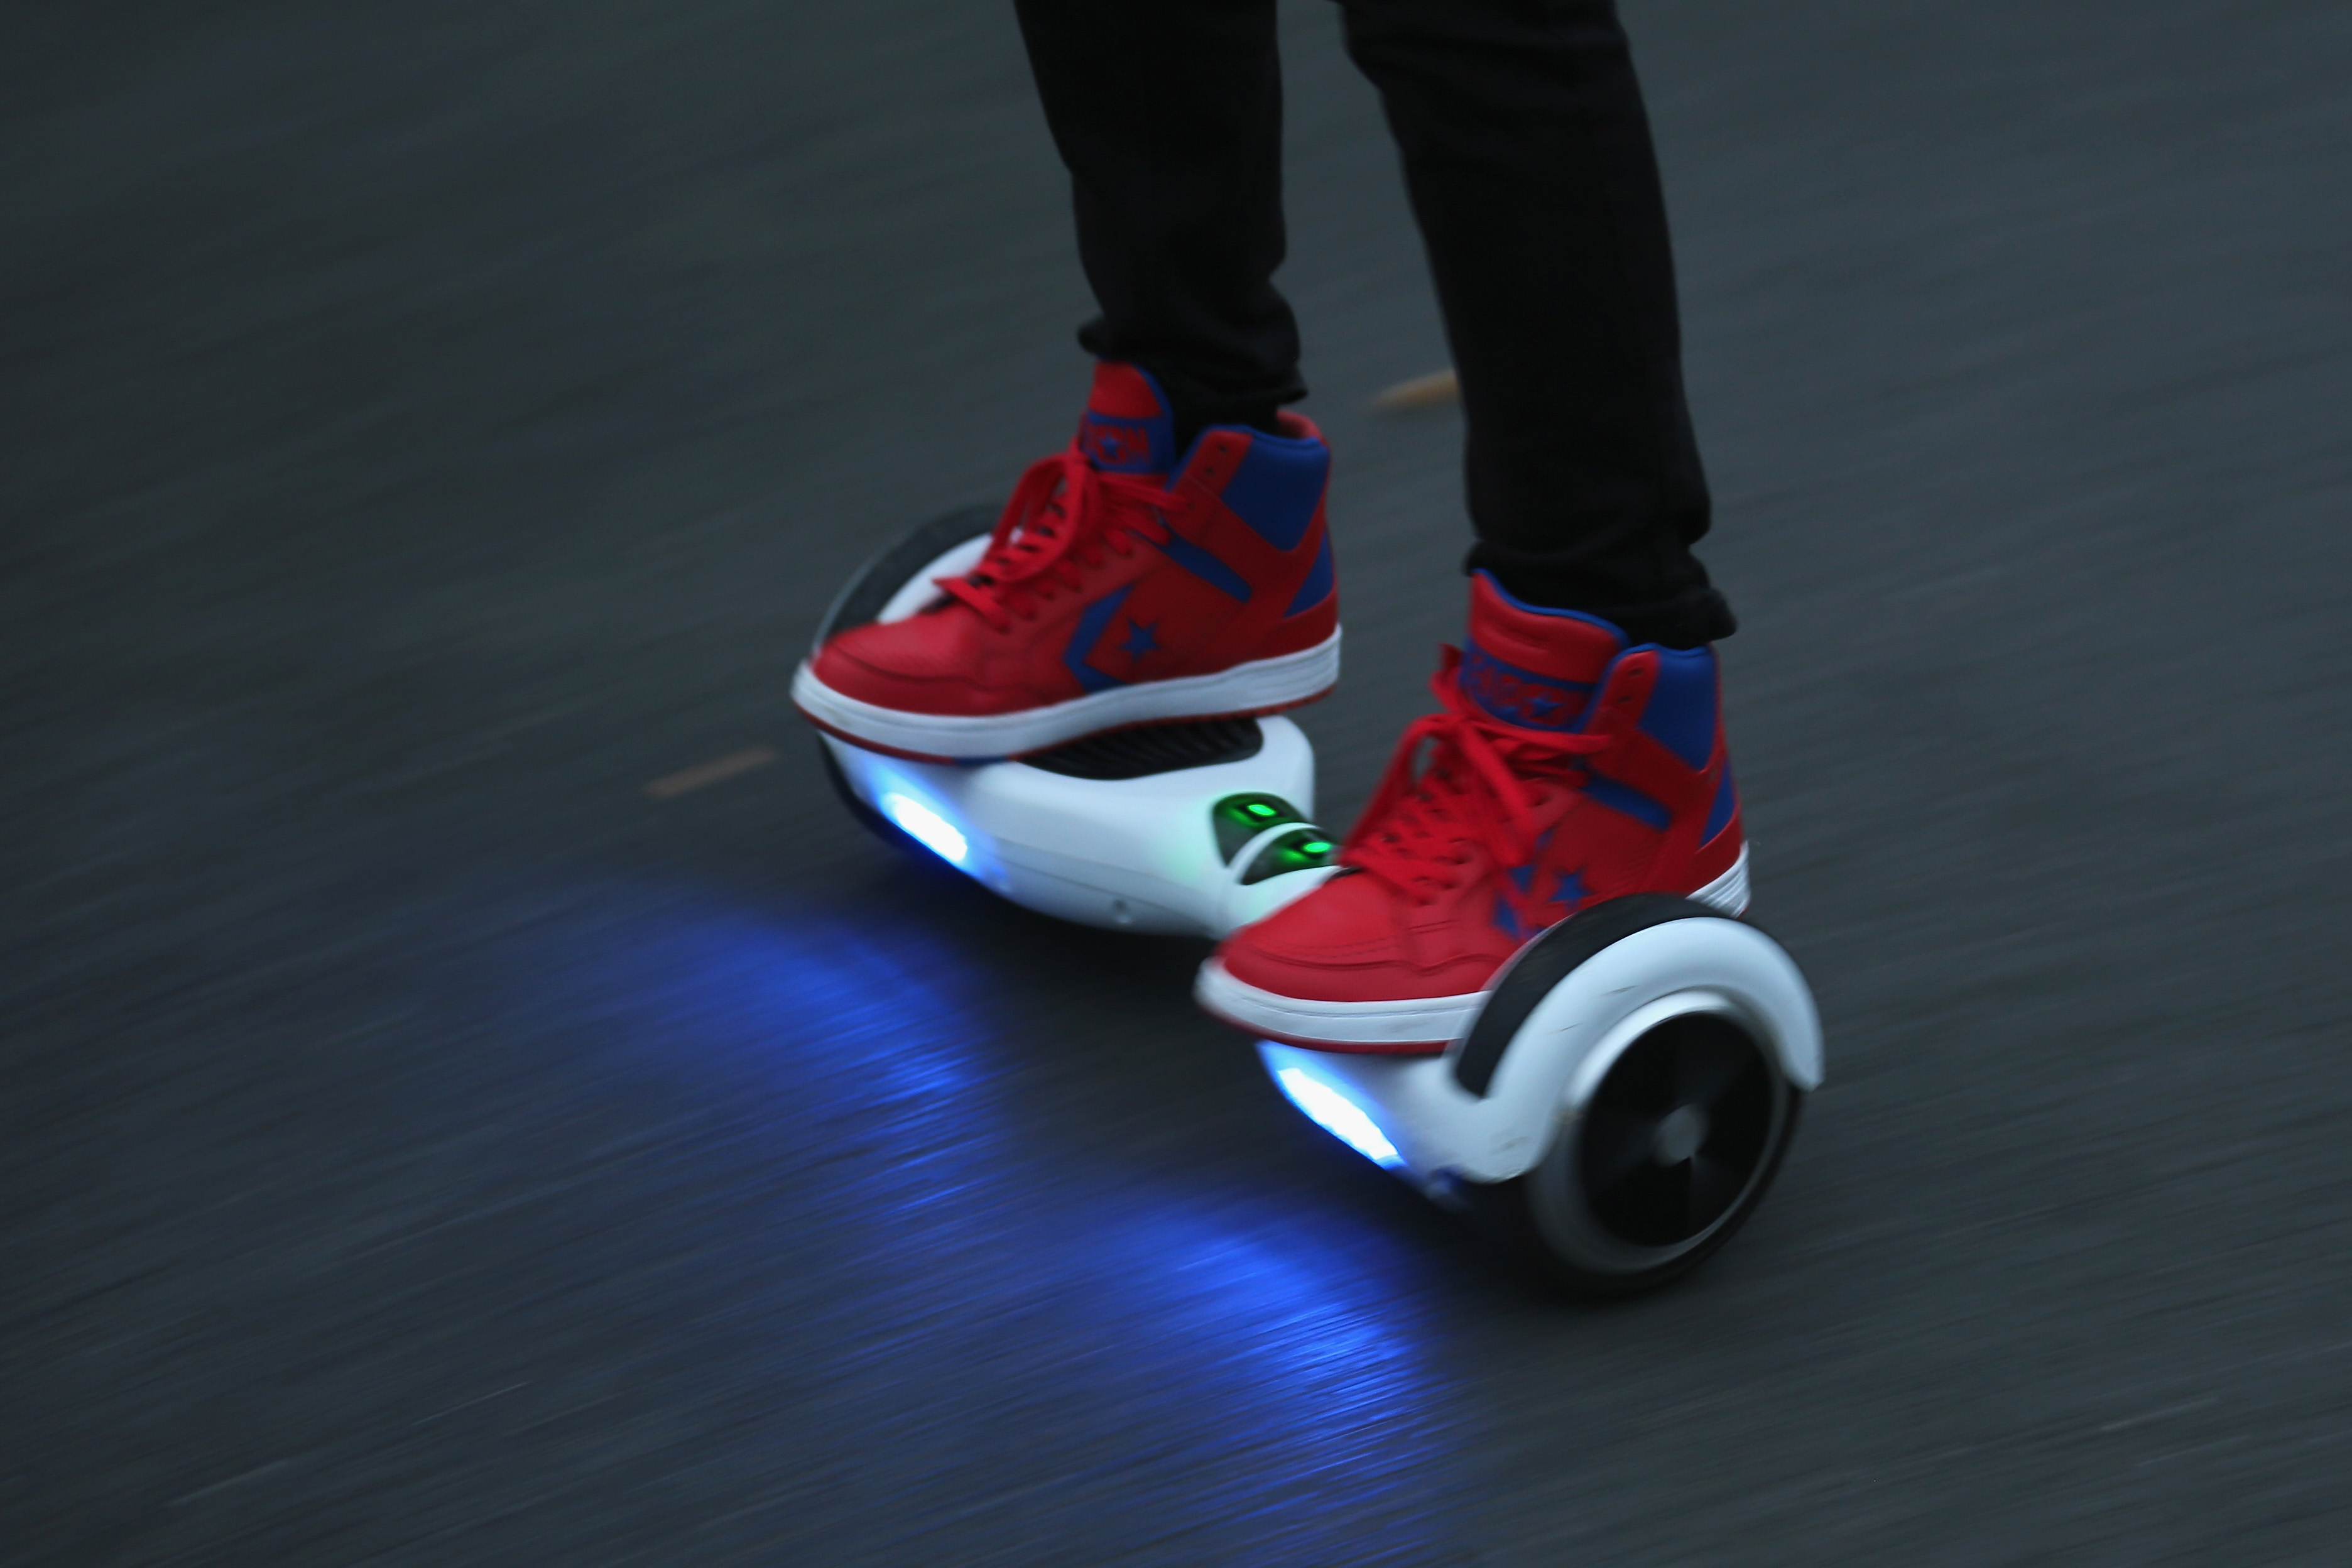 A youth poses as he rides a hoverboard, which are also known as self-balancing scooters and balance boards, on Oct. 13, 2015.